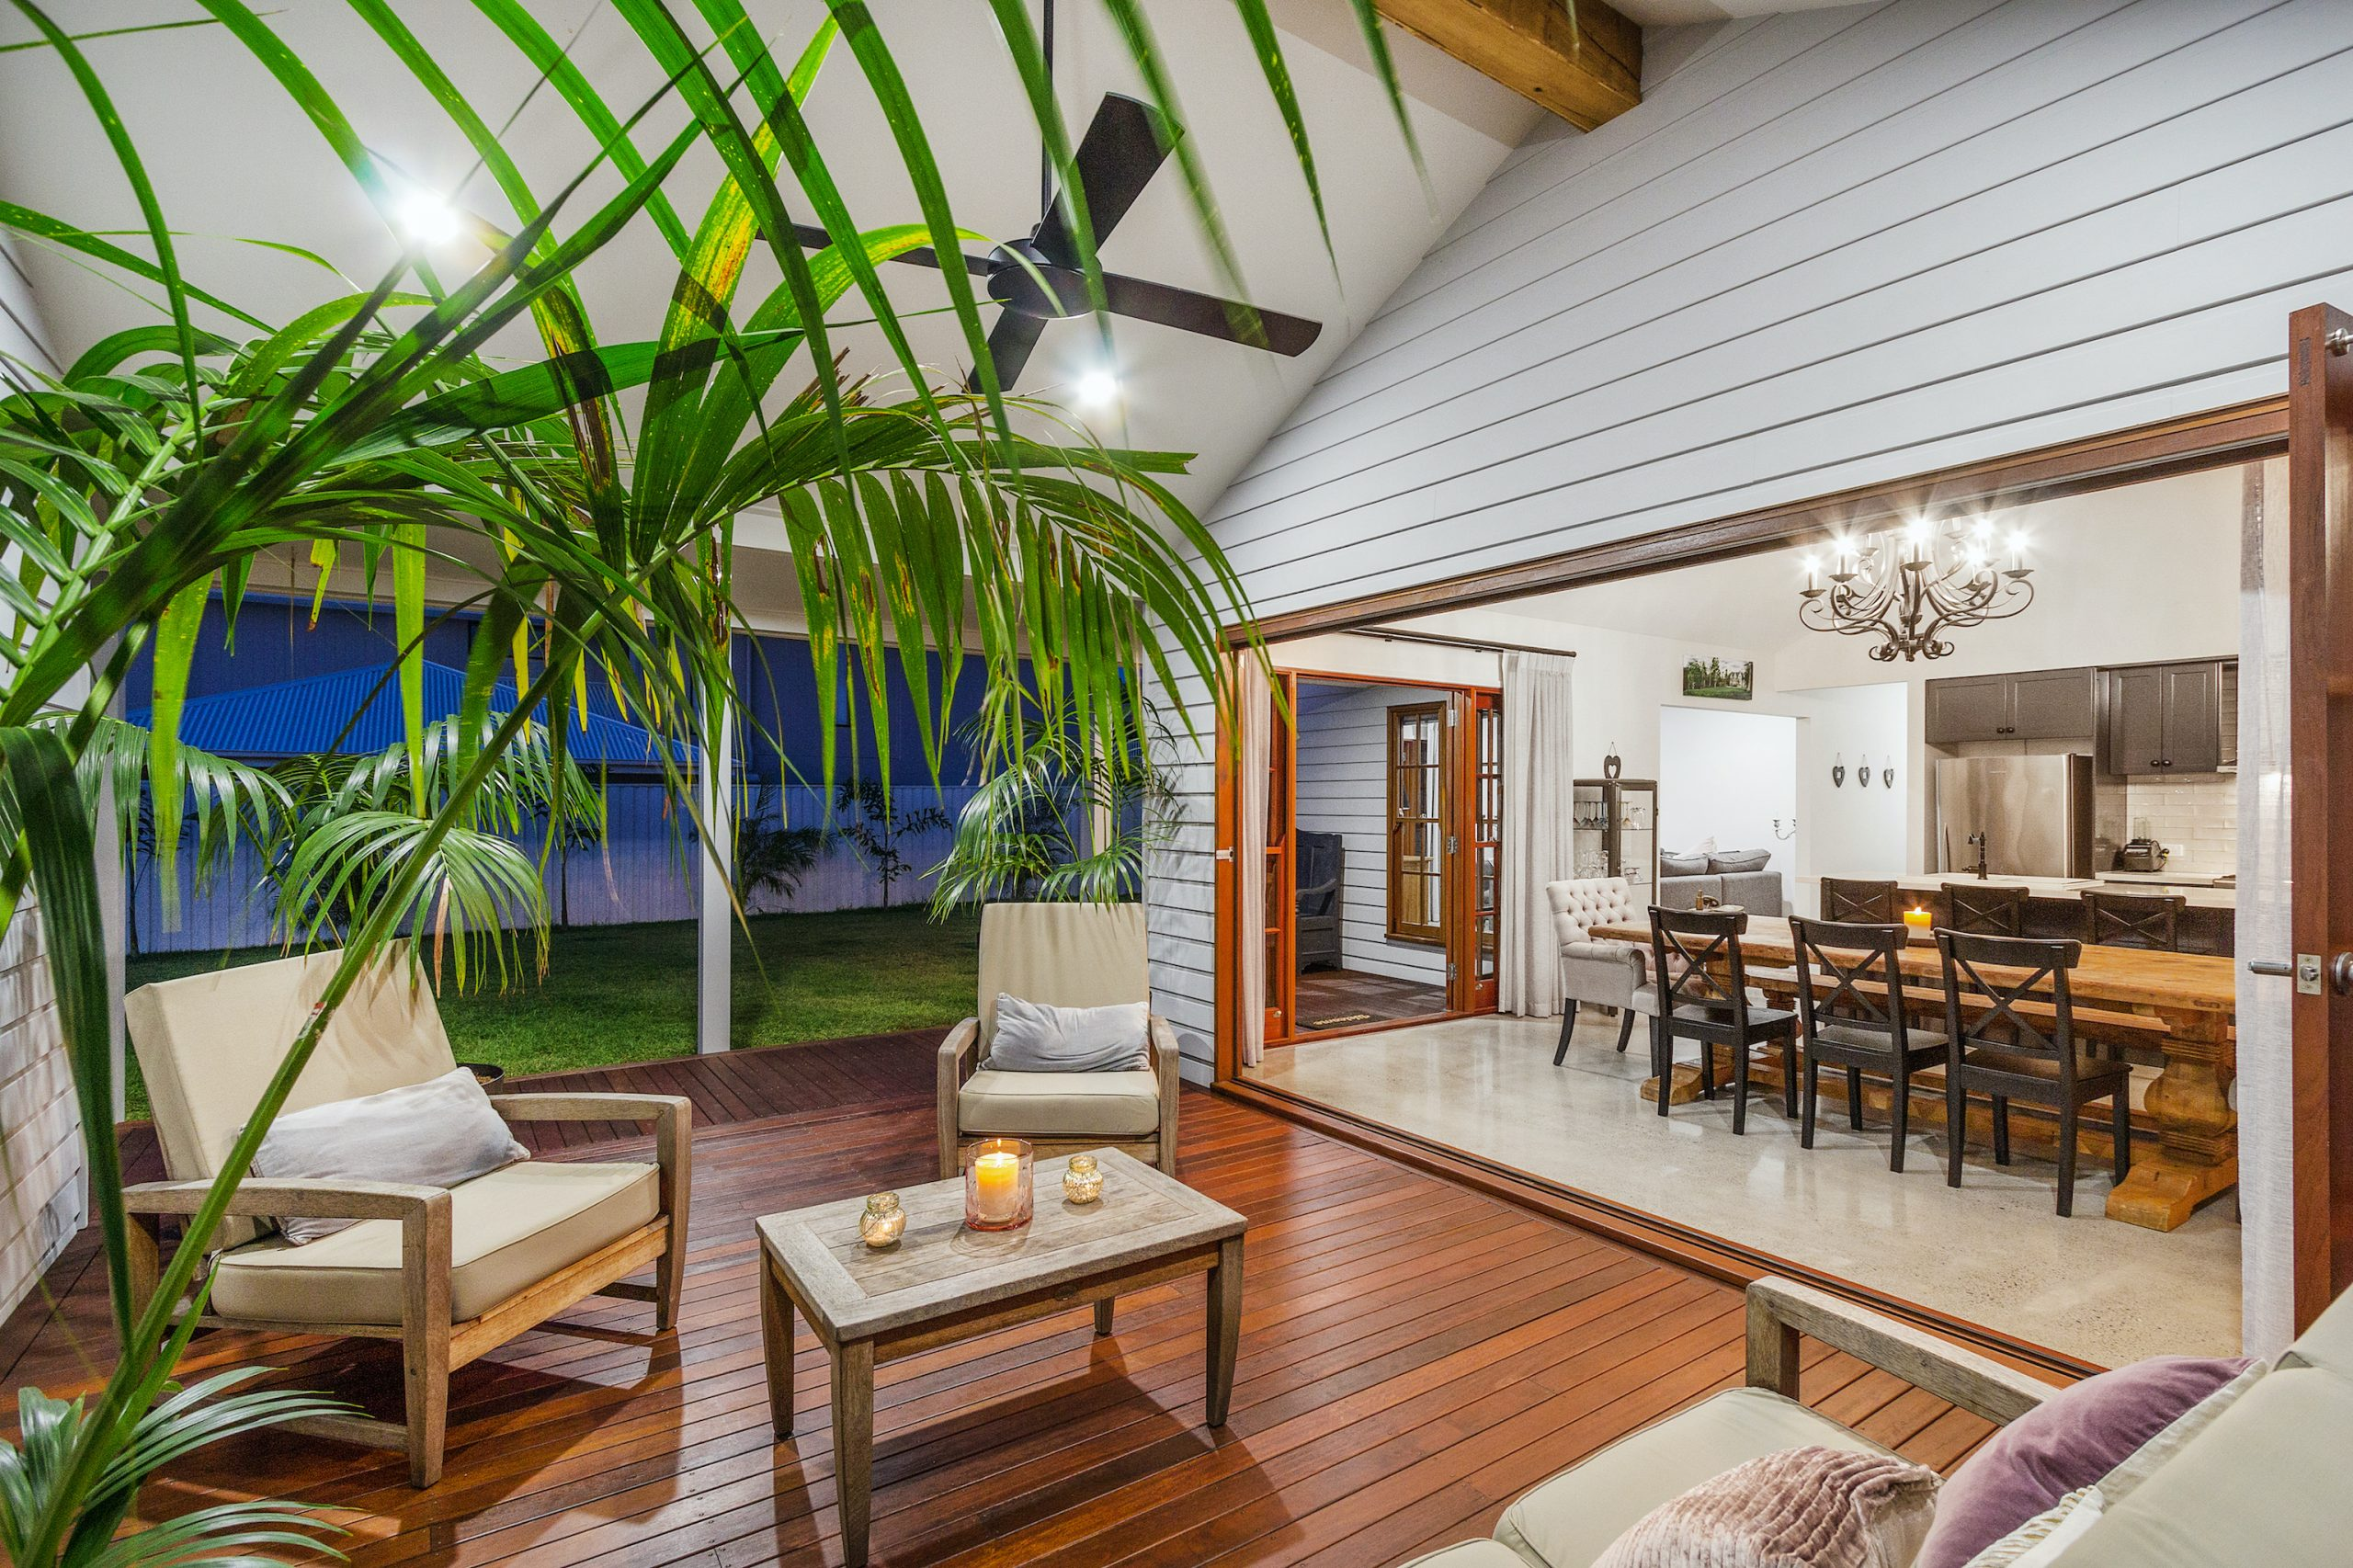 Charming Beach Home That Dreams Are Made Of - Casuarina